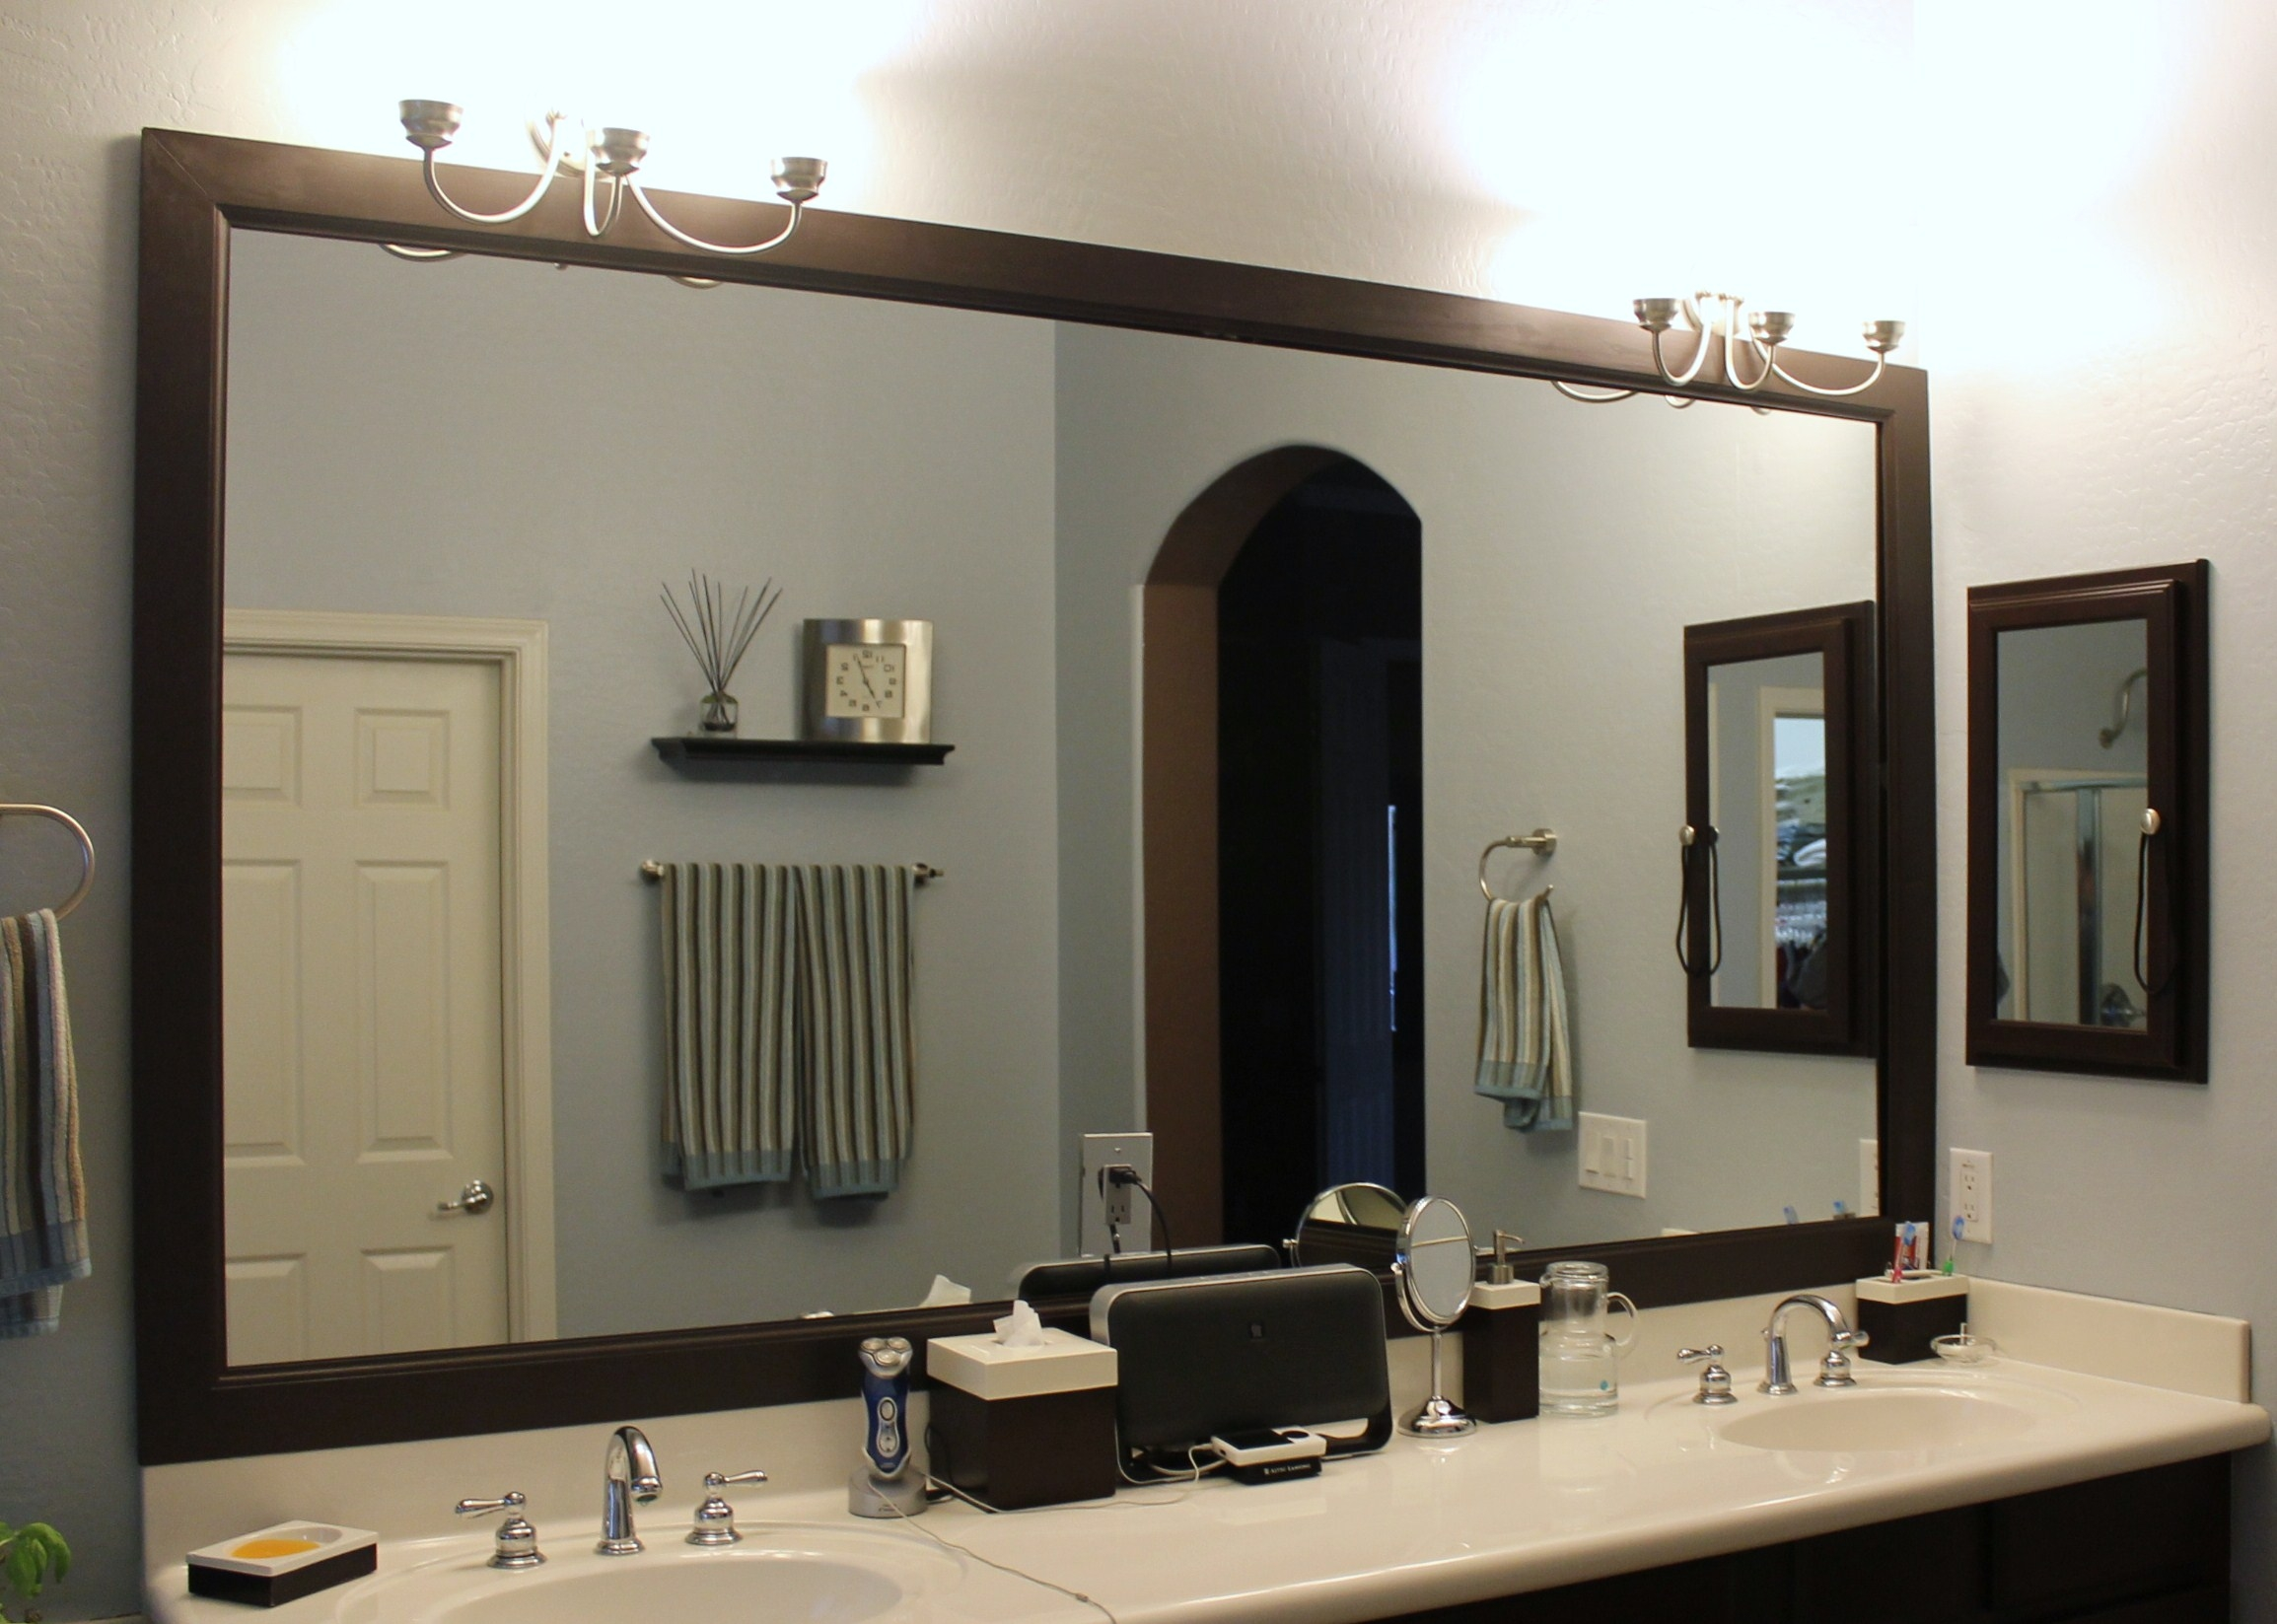 Permalink to Bathroom Mirror Trim Ideas